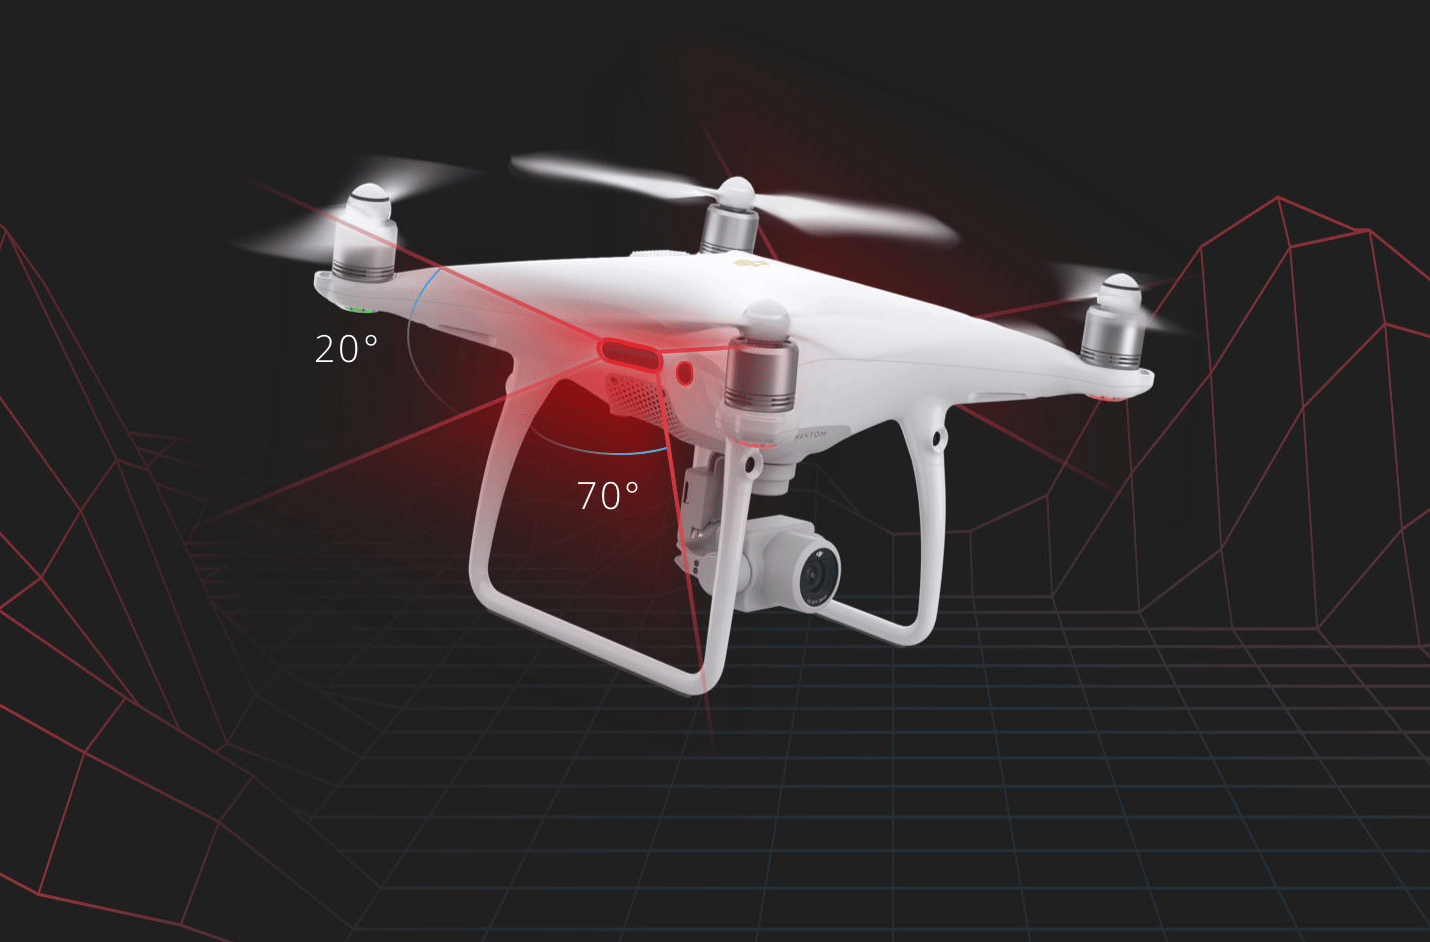 The new Phantom is the first DJI drone to incorporate an infrared sensing system